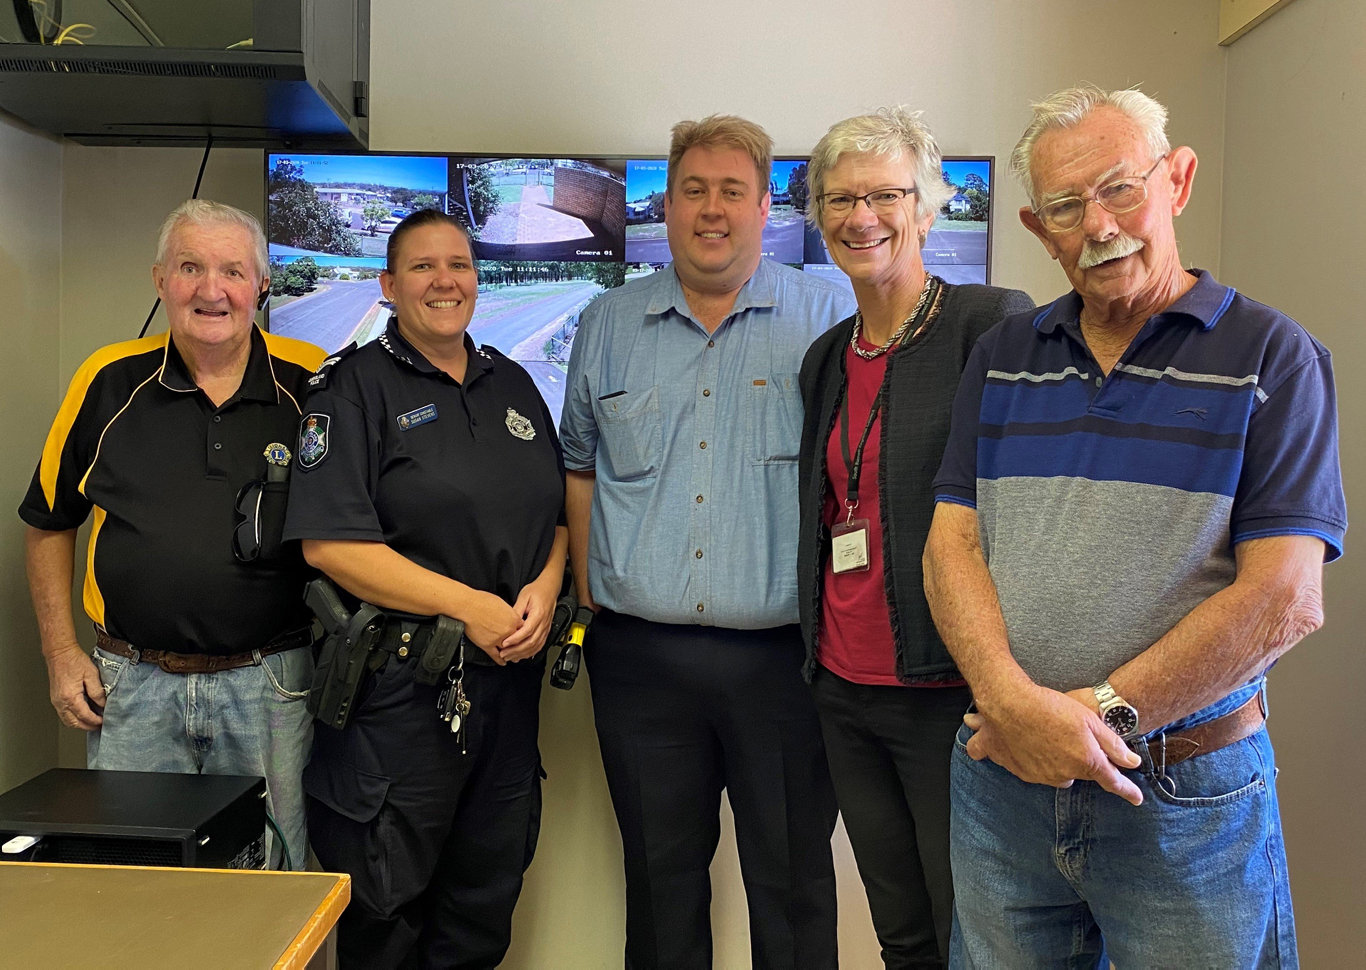 EYES ON YOU: Fred Law, president of the Wondai Lions Club, Senior Constable Susan Stevens from the Wondai Police, Luke Radunz from DataWave Internet Wondai, Councillor Ros Heit and Brian Hodson from Wondai Neighbourhood Watch at the official launch of the new Wondai security cameras.